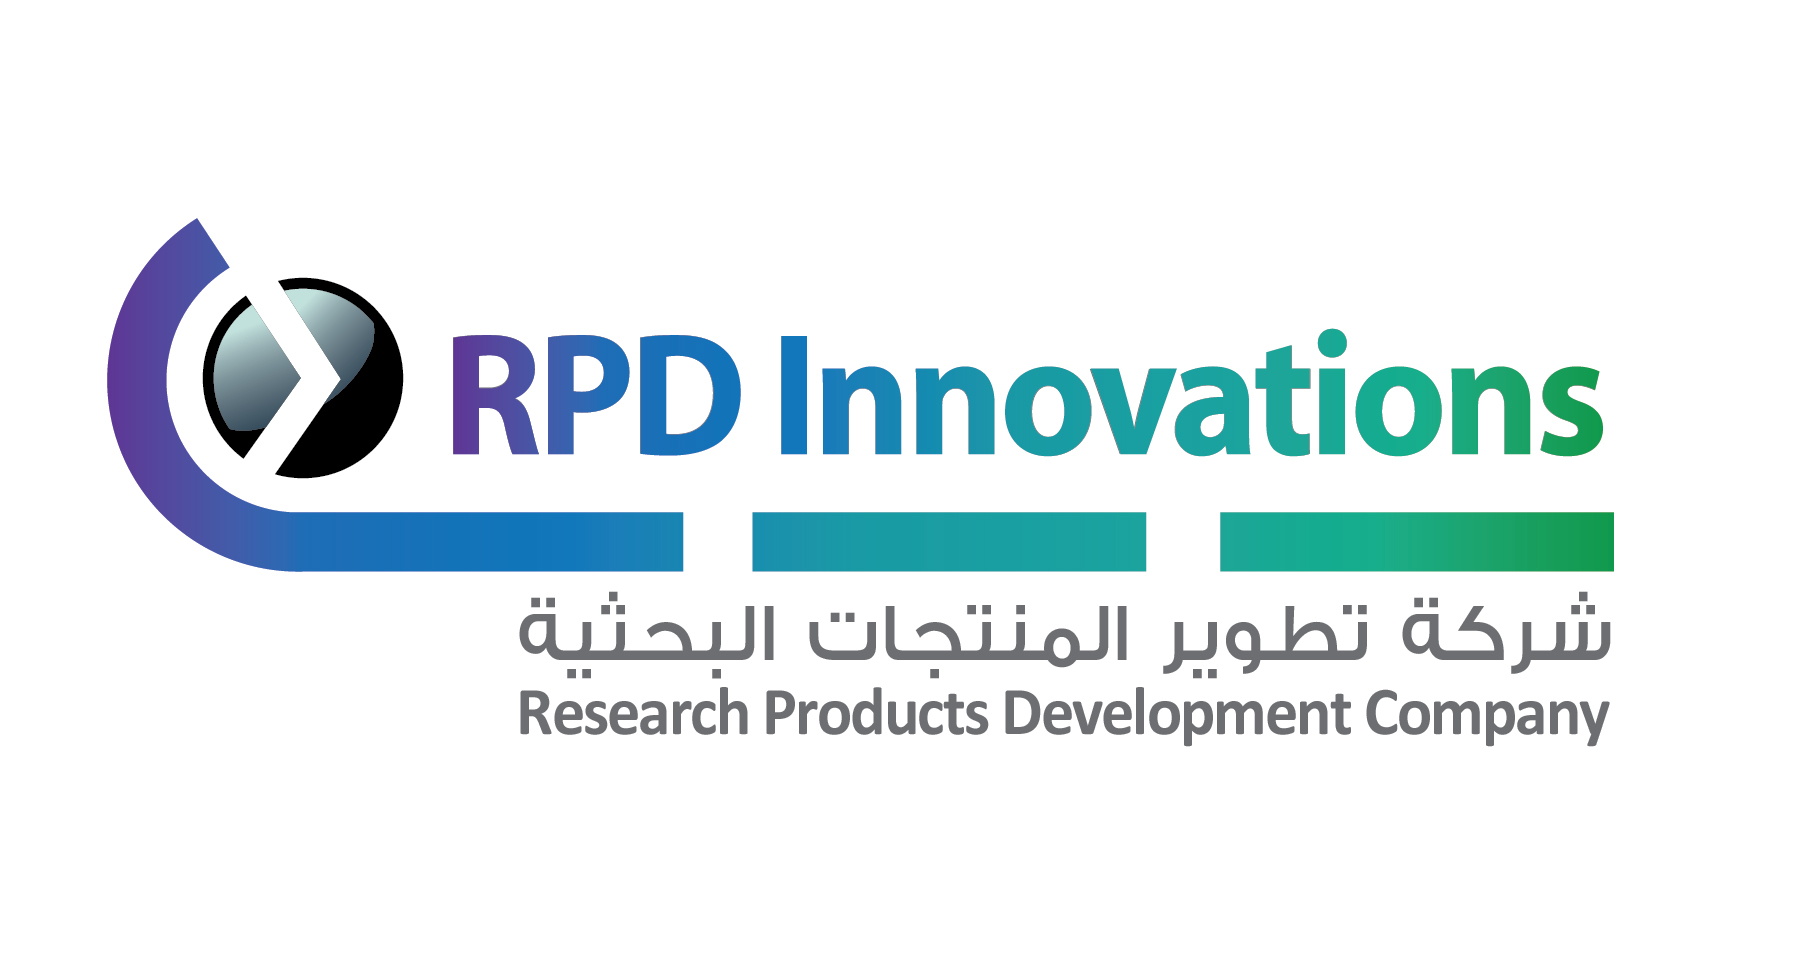 Research Products Development Company